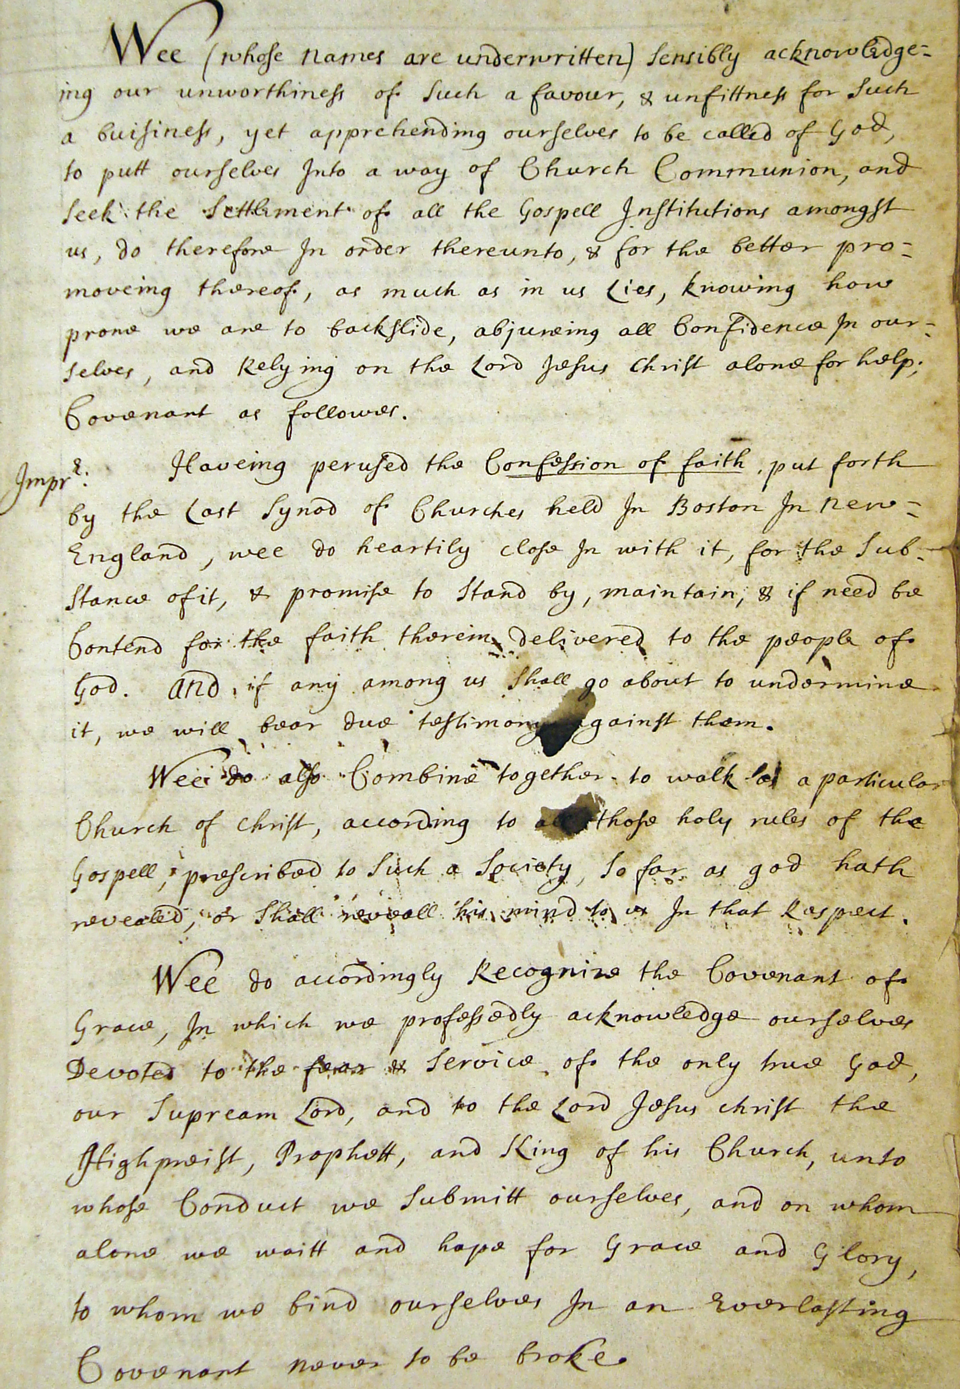 1696 Parish Covenant, page 1 (courtesy of the Lexington Historical Society)